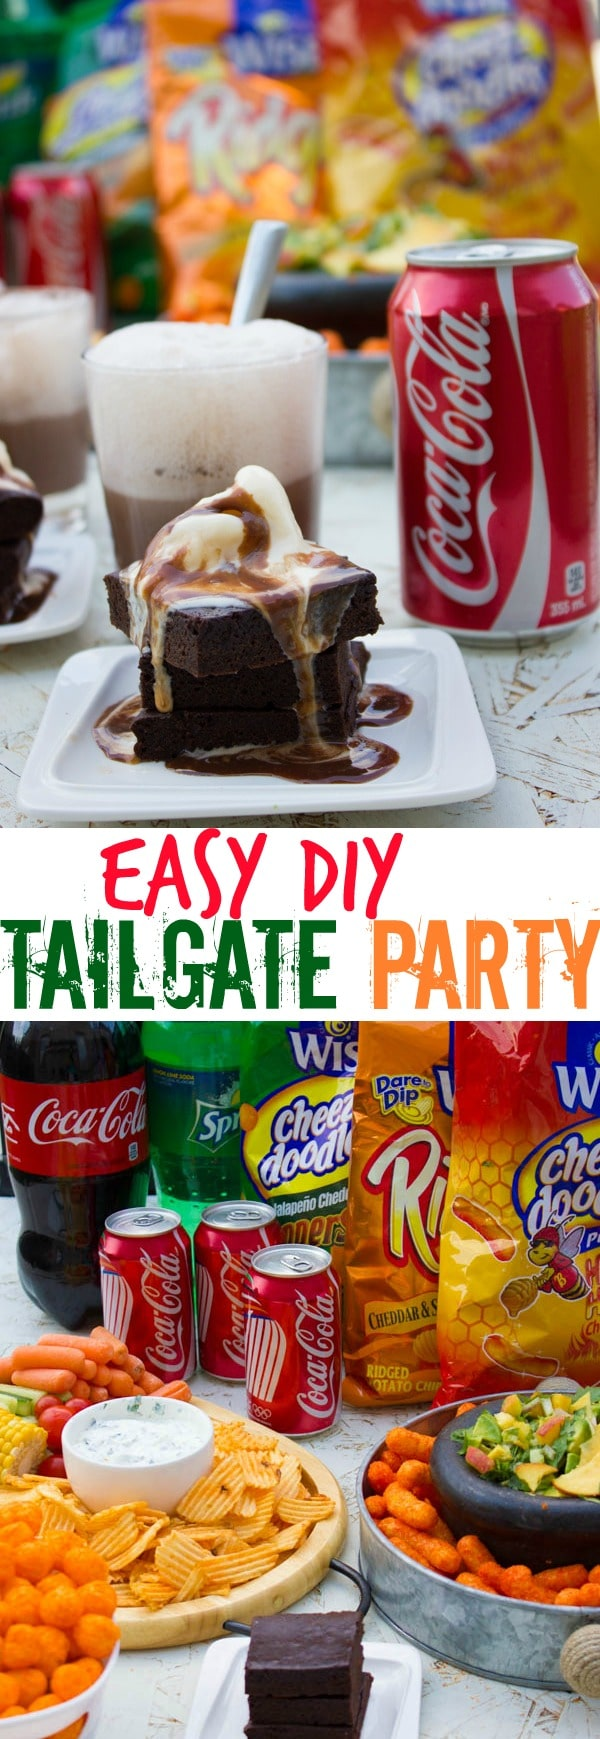 Easy DIY Tailgate Party Food Tutorial | a bunch of my favorite easy recipes to help you throw a tailgate party for a crowd in a breeze! It's a combo of a quick Herb Yogurt Dip, a sweet and spicy Peach and Avocado Salsa and dark chocolate Coca-Cola Brownies! #cold, #easy, #dessert, #appetizers, #brownies, #outdoors